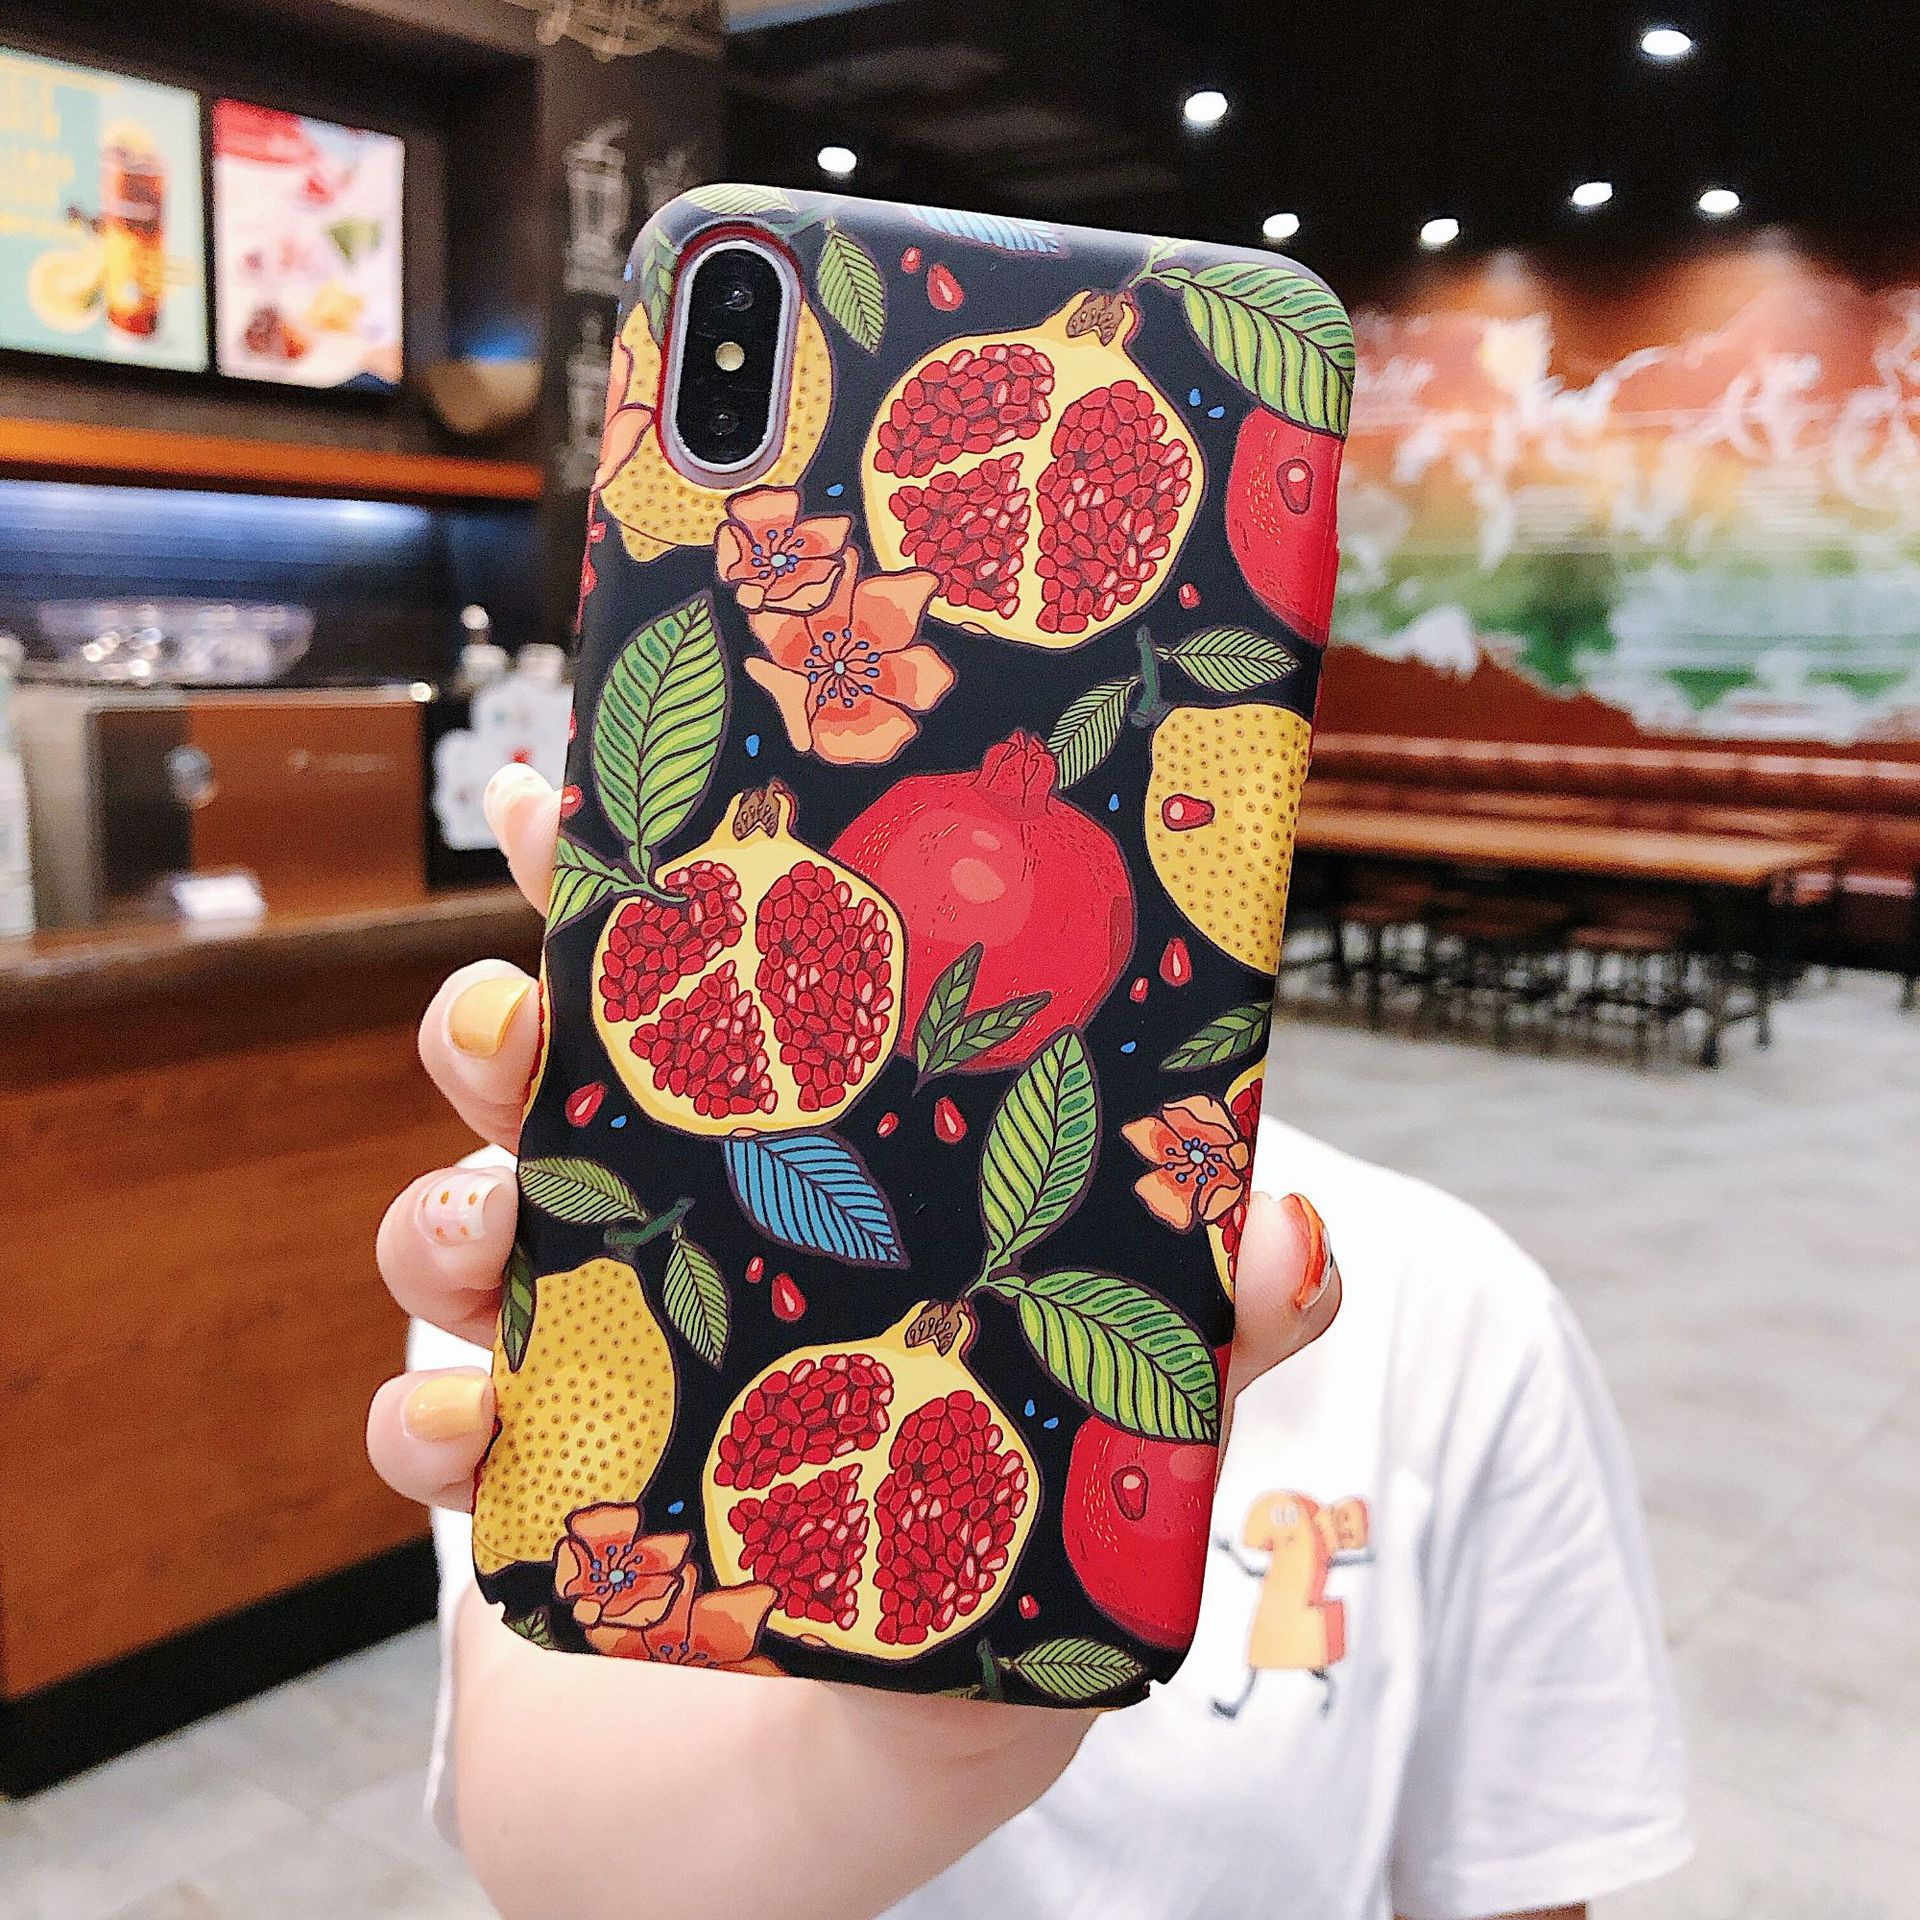 Fashion iPhone 8plus mobile phone case XSmax graffiti pomegranate iPhone X XR hard phone case NHDV197915